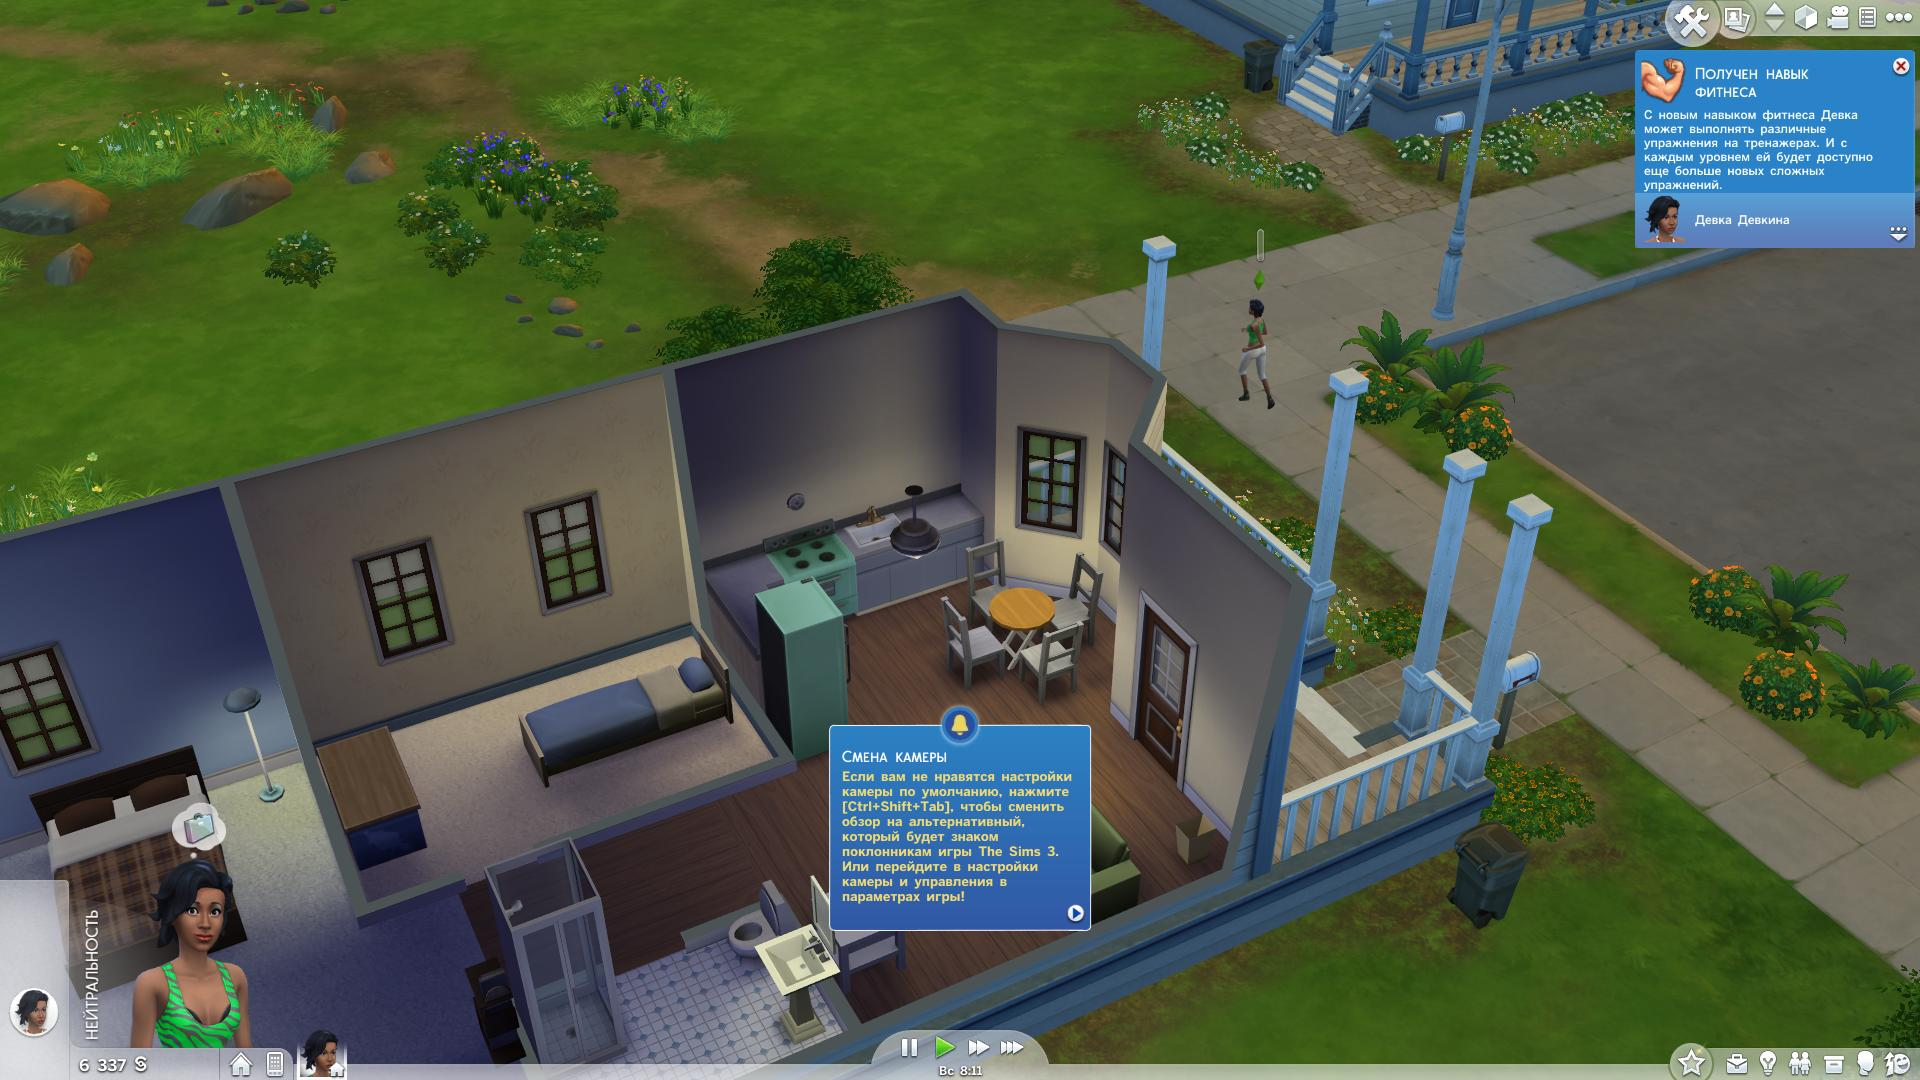 Скриншот к игре The Sims 4: Deluxe Edition [v 1.45.62.1020] (2014) PC | RePack от R.G. Механики